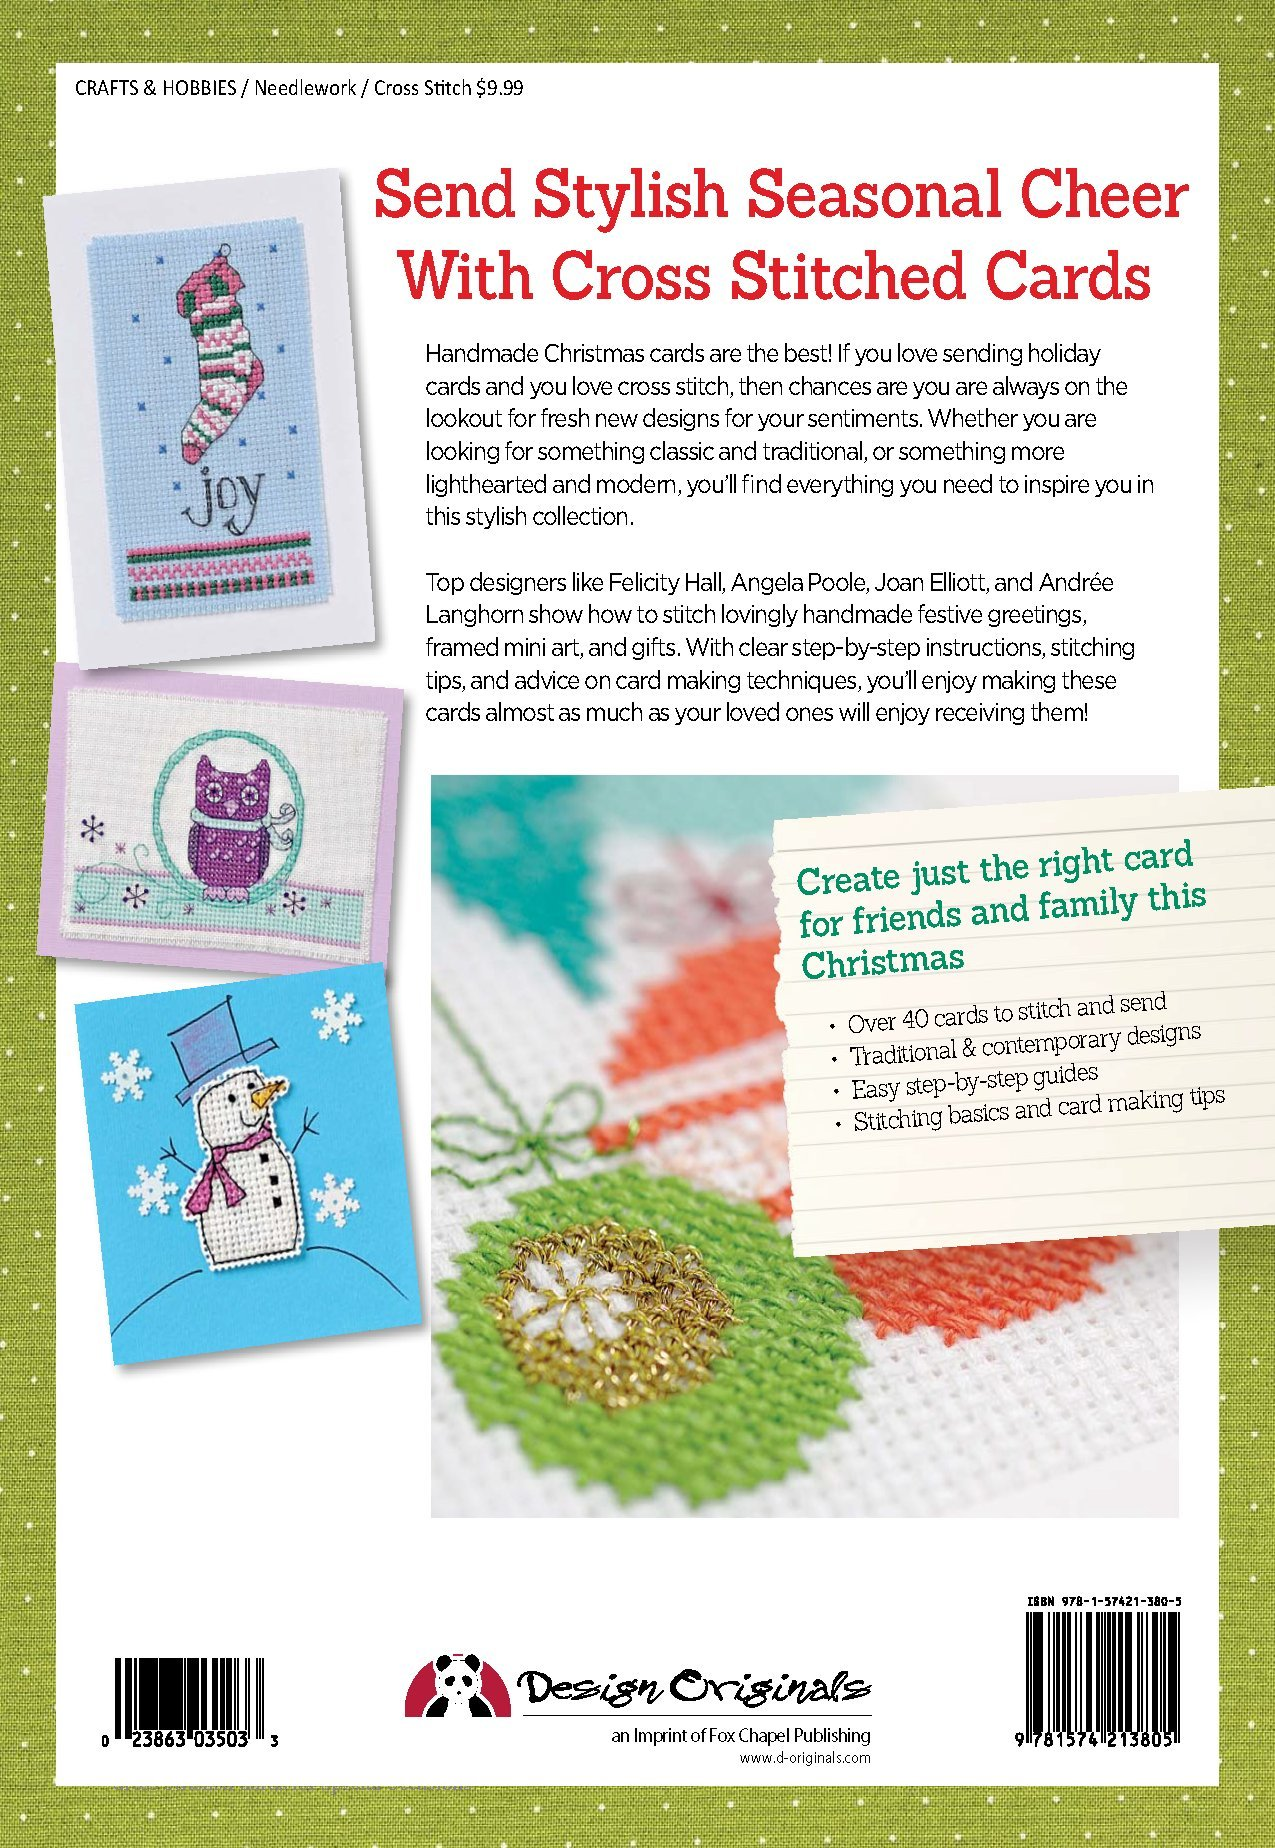 Cross Stitched Cards For The Holidays Simply Stylish Cards And Tags